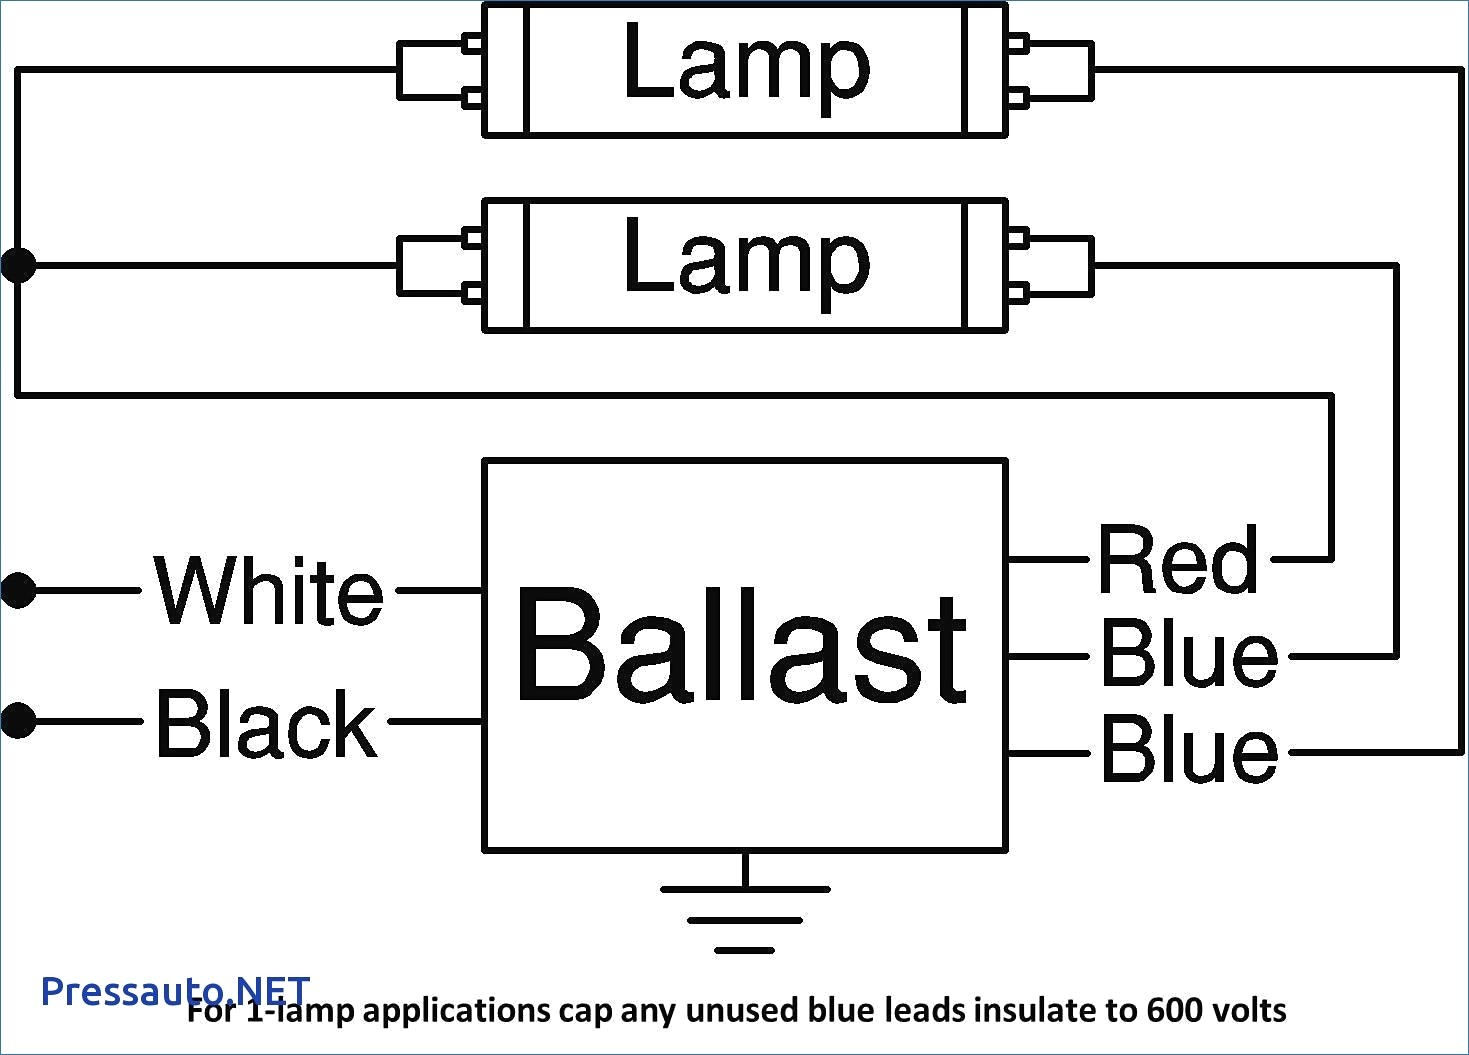 2 lamp ballast wiring diagram unique wiring diagram image rh mainetreasurechest com General Electric Ballast Wiring Diagram Universal Ballast Wiring Diagrams